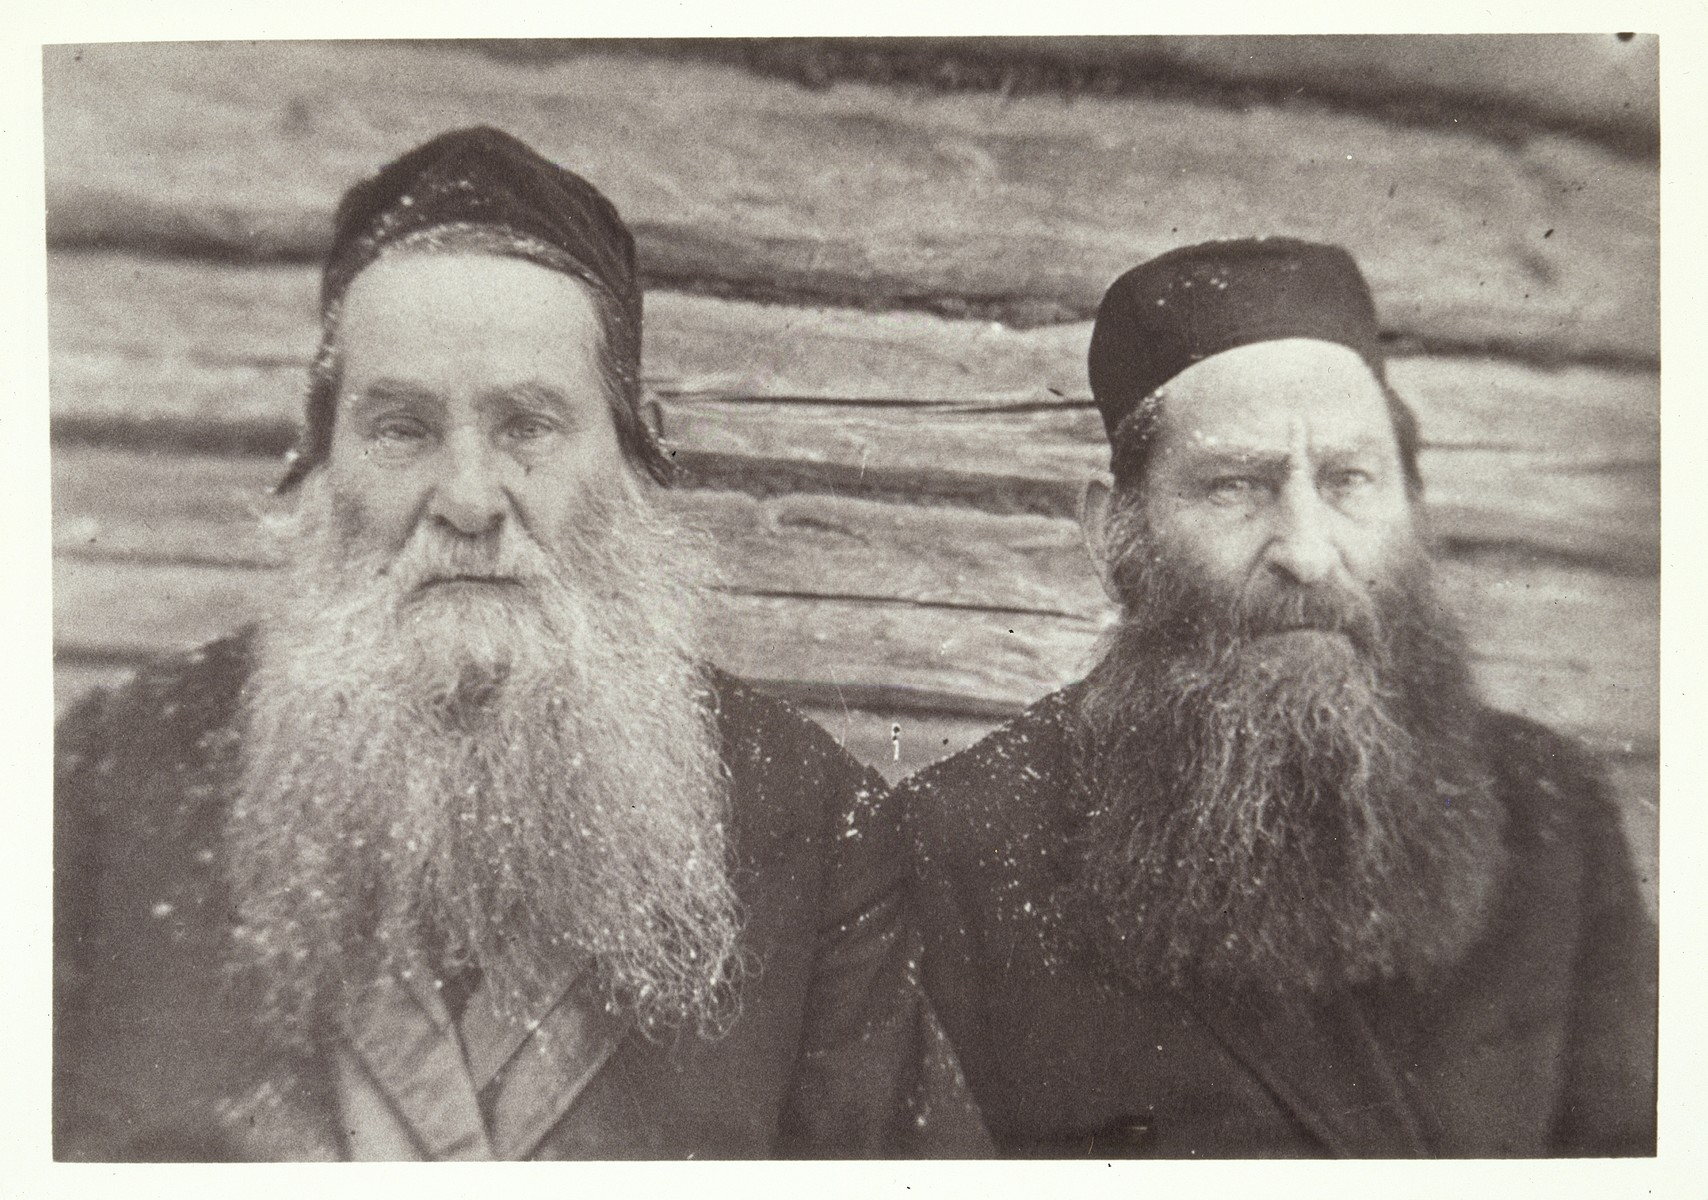 """Portrait of the two Moszczenik brothers    (Right to left), Reb Dovid """"der Kichier"""" and """"Reb Zvi-Hersh the Garden Preacher.""""  He earned his nickname since he spoke to his vegetable garden every day.  He was also known as the """"Reb Zvi-Hersh the Hafetz Hayyim's Preacher"""", since he raised funds for his Yeshivah.  The inscription on the back of the photo reads: """"We were photographed in the backyard of Liebke while a snow was falling."""""""